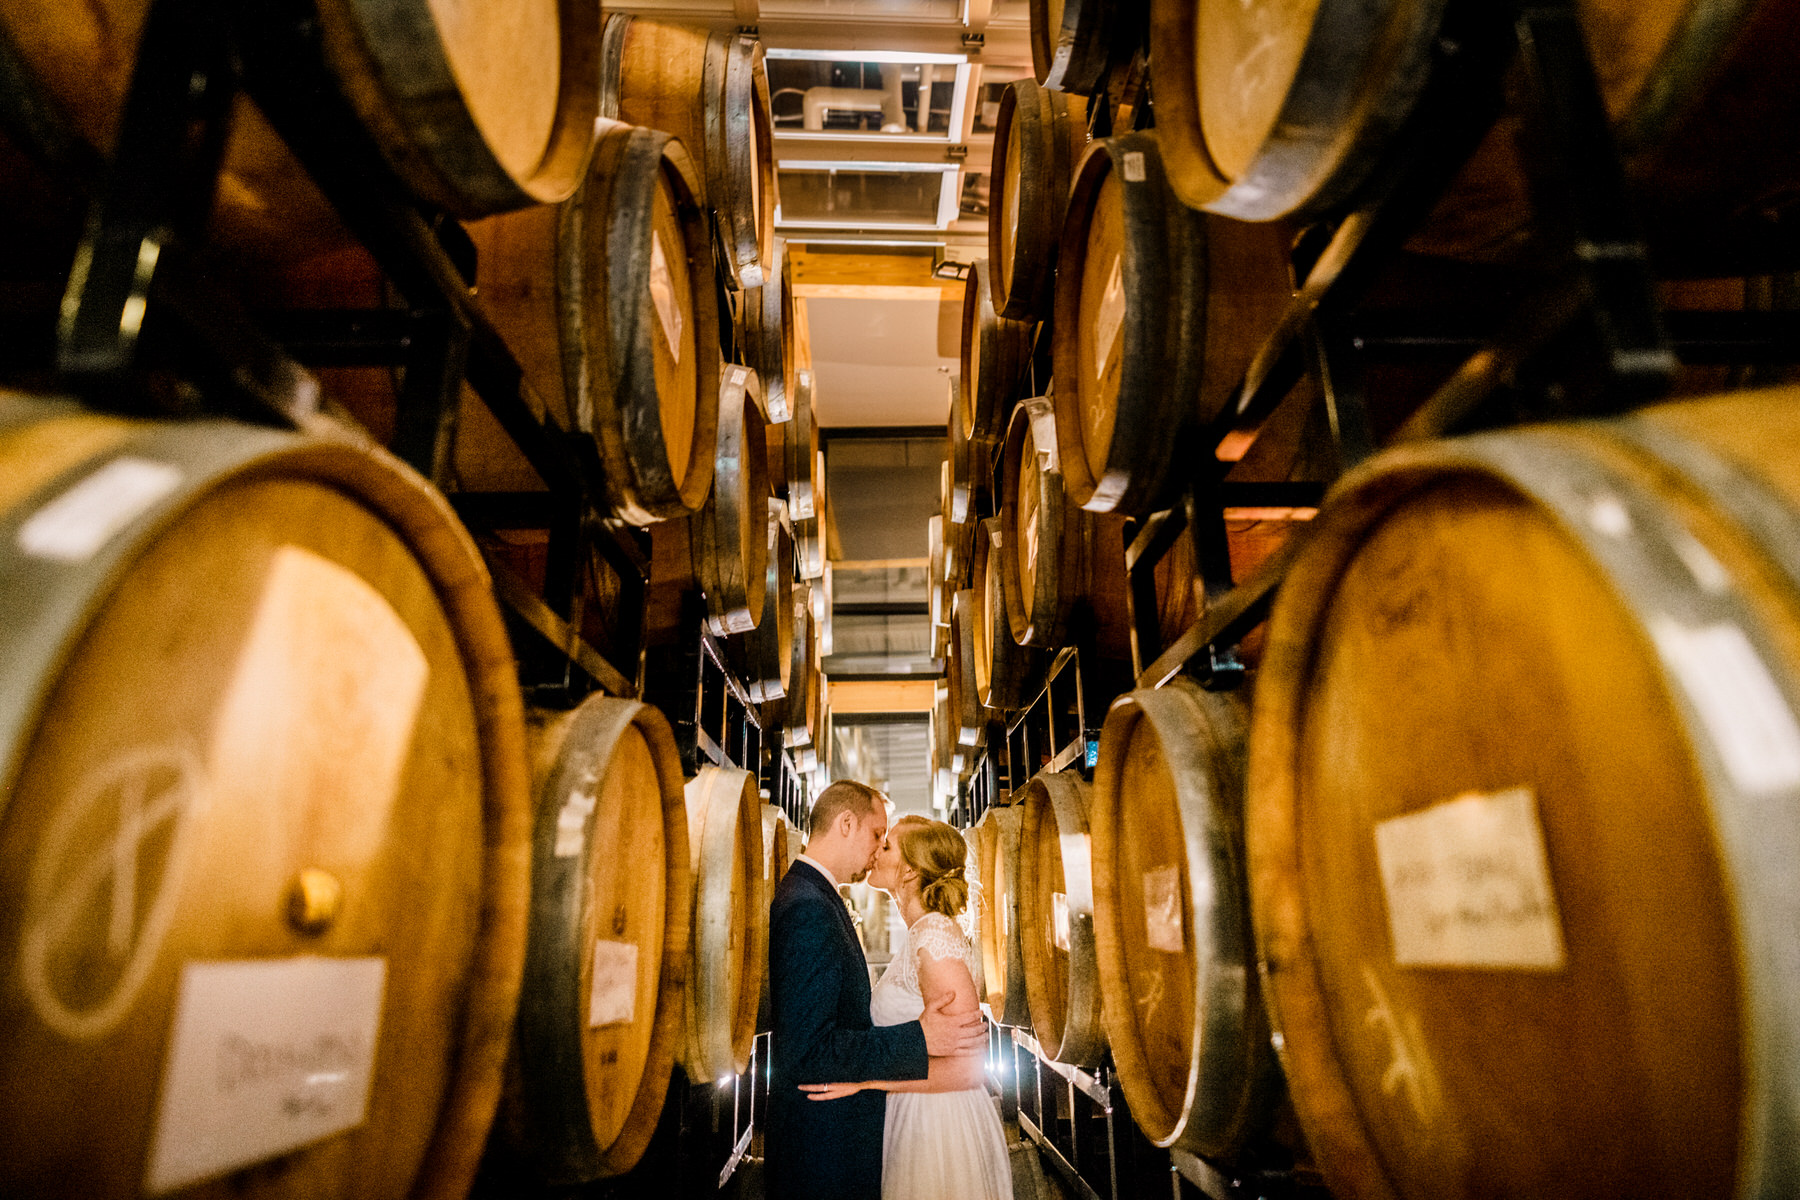 barrel room photo ideas at district winery wedding by Washington DC Wedding Photographer Adam Mason